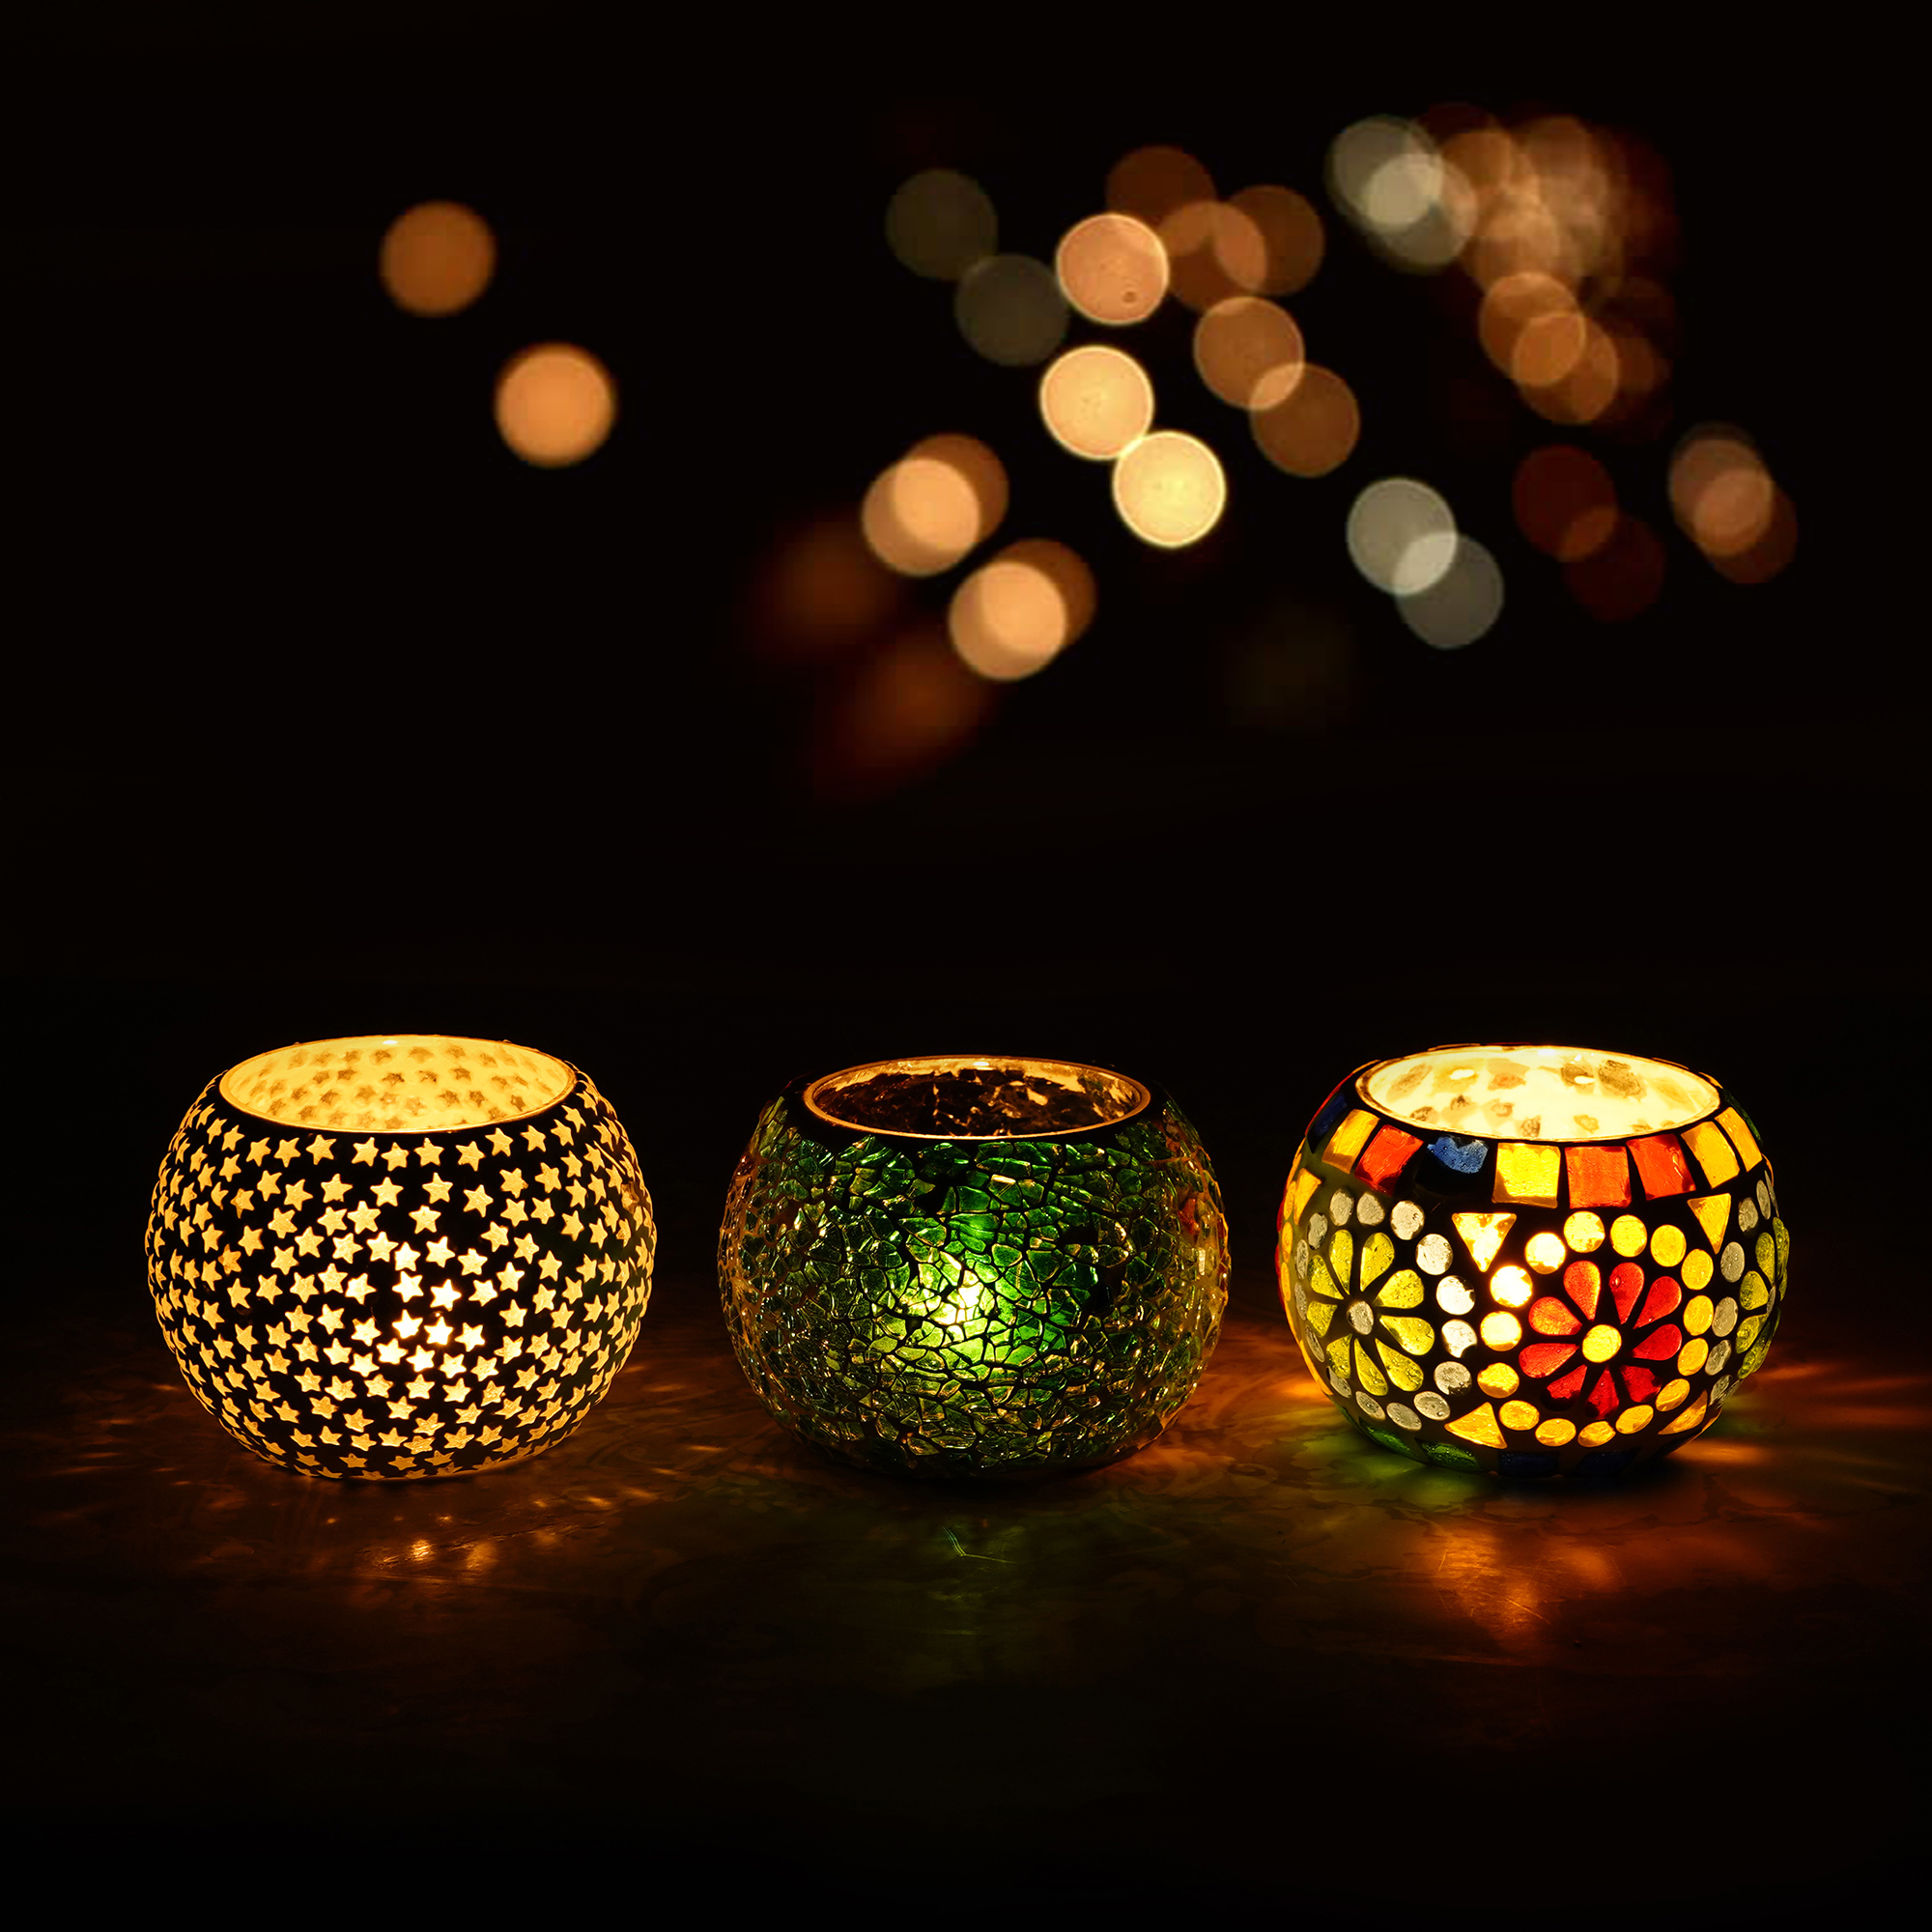 Set of 3 Mosiac Glass Decorative Tea Light Holder/Diya Indian Home Decor